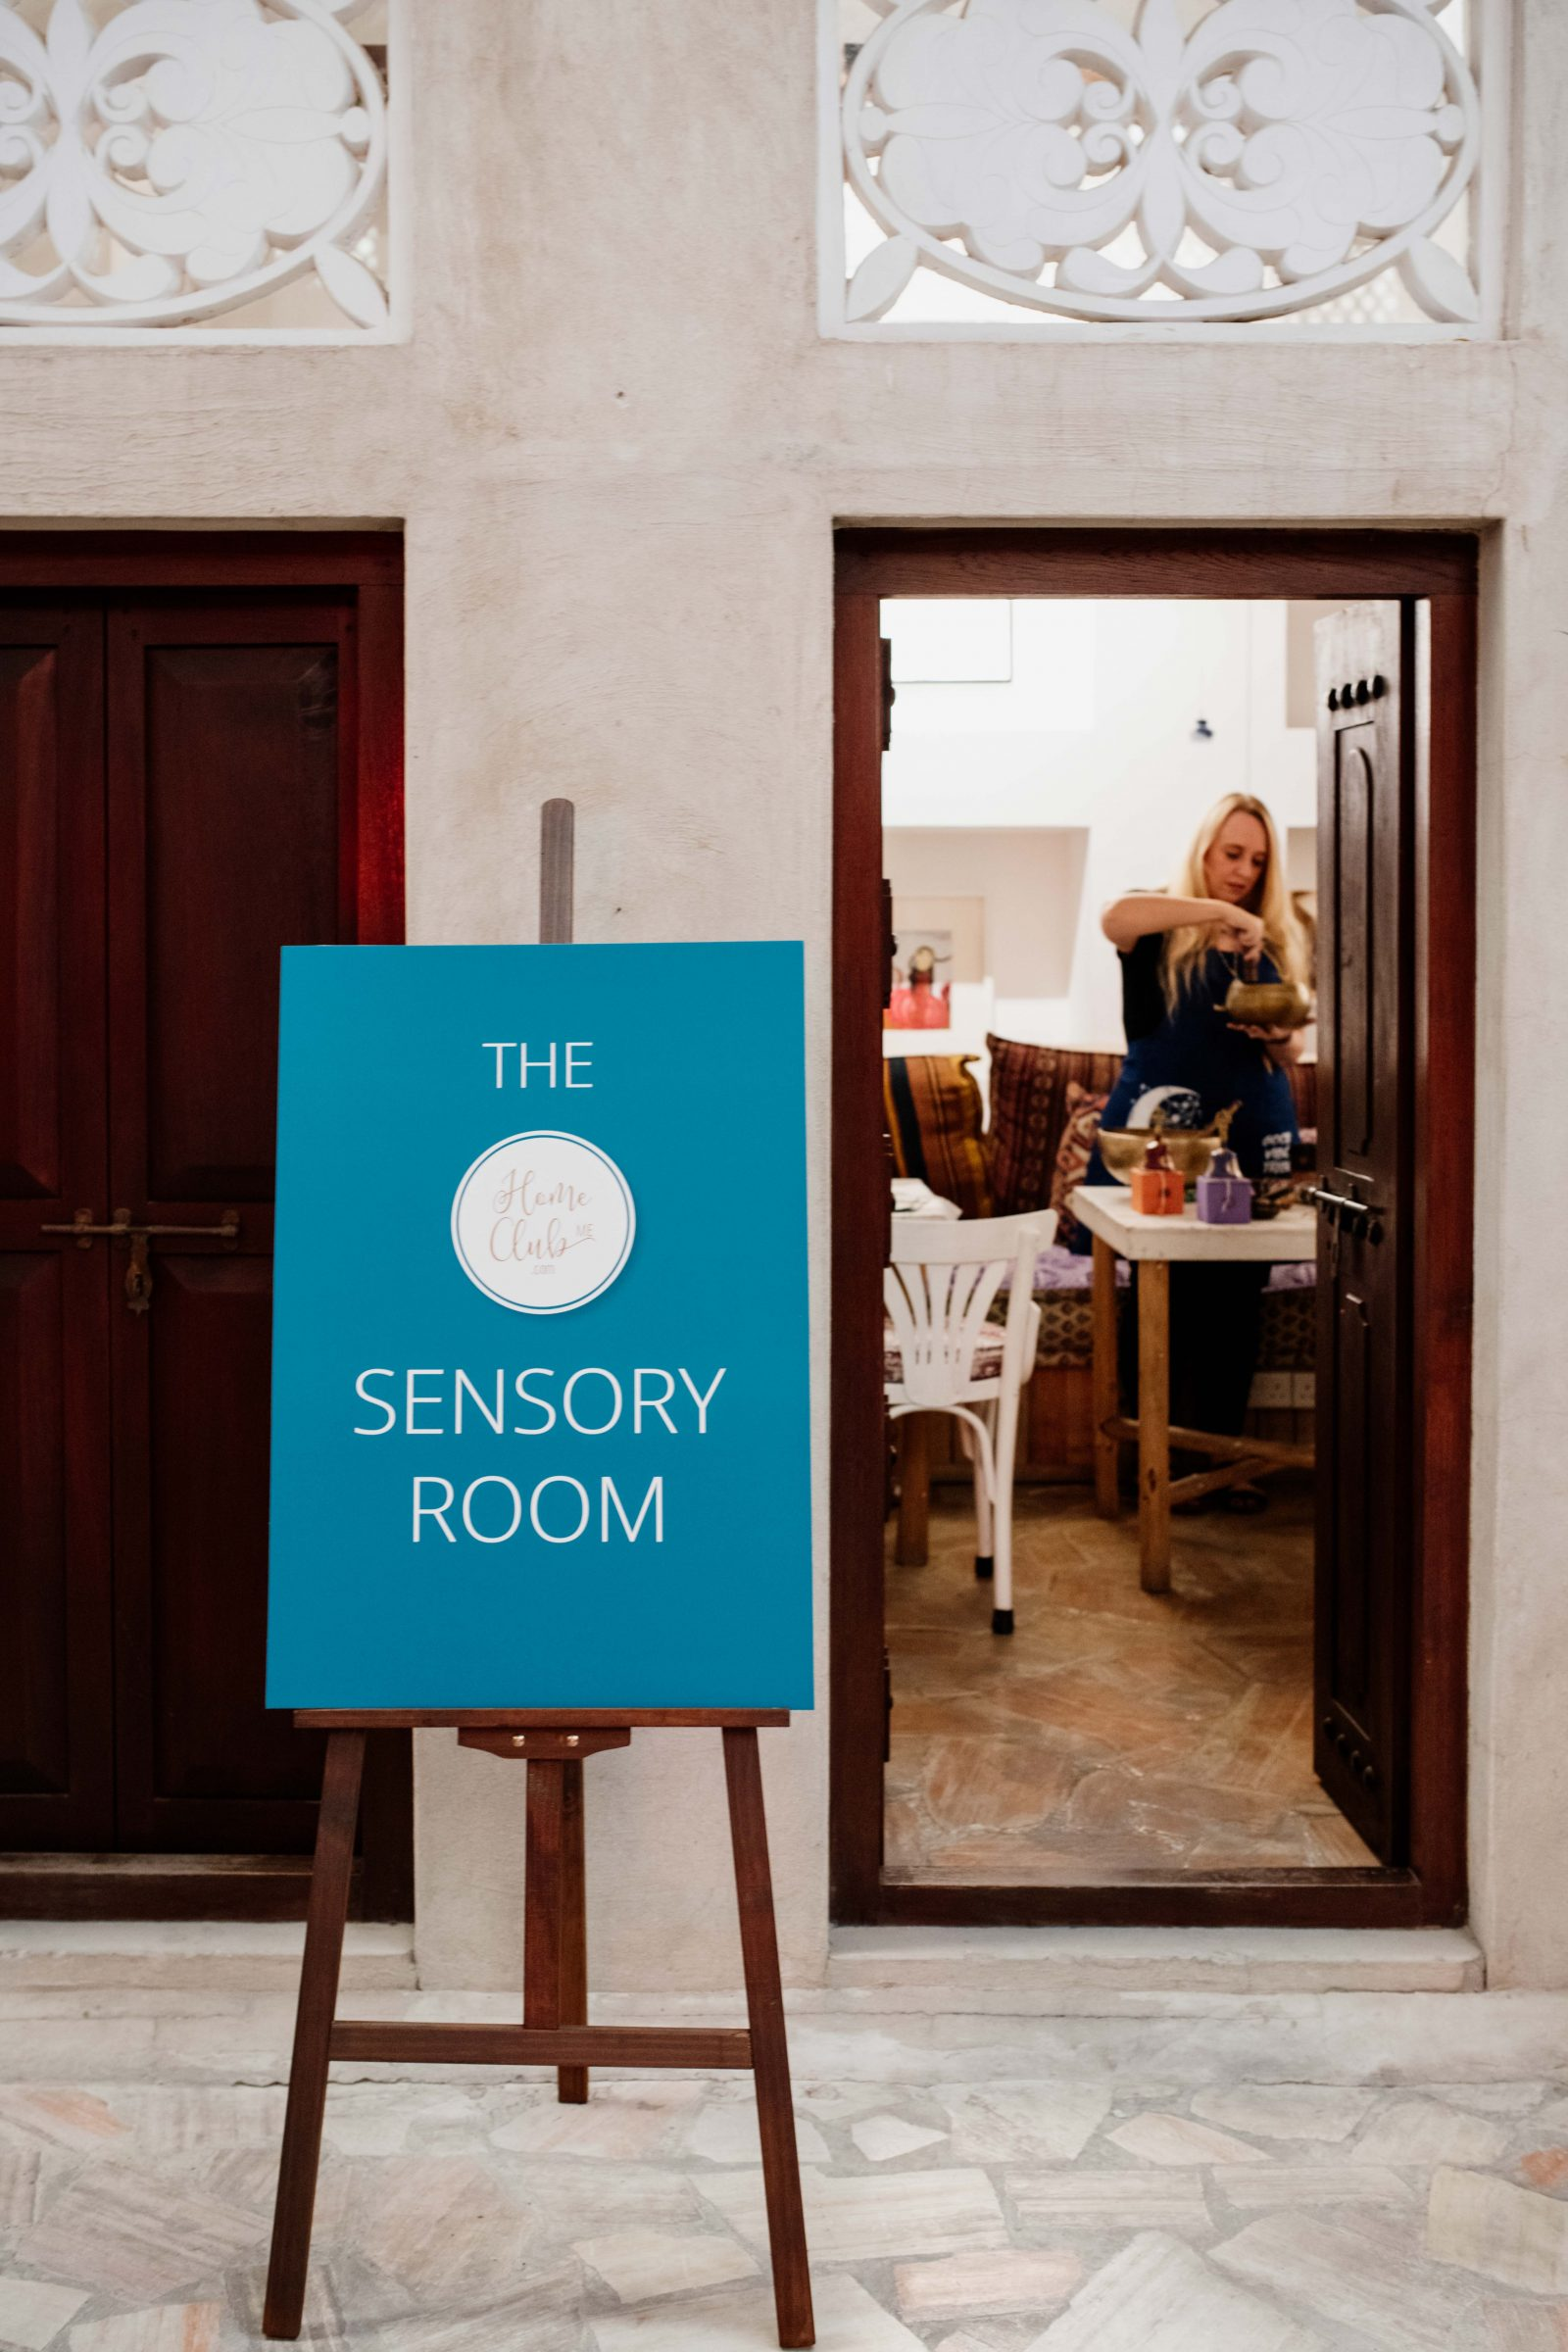 Home Club ME Sensory Room easel sign